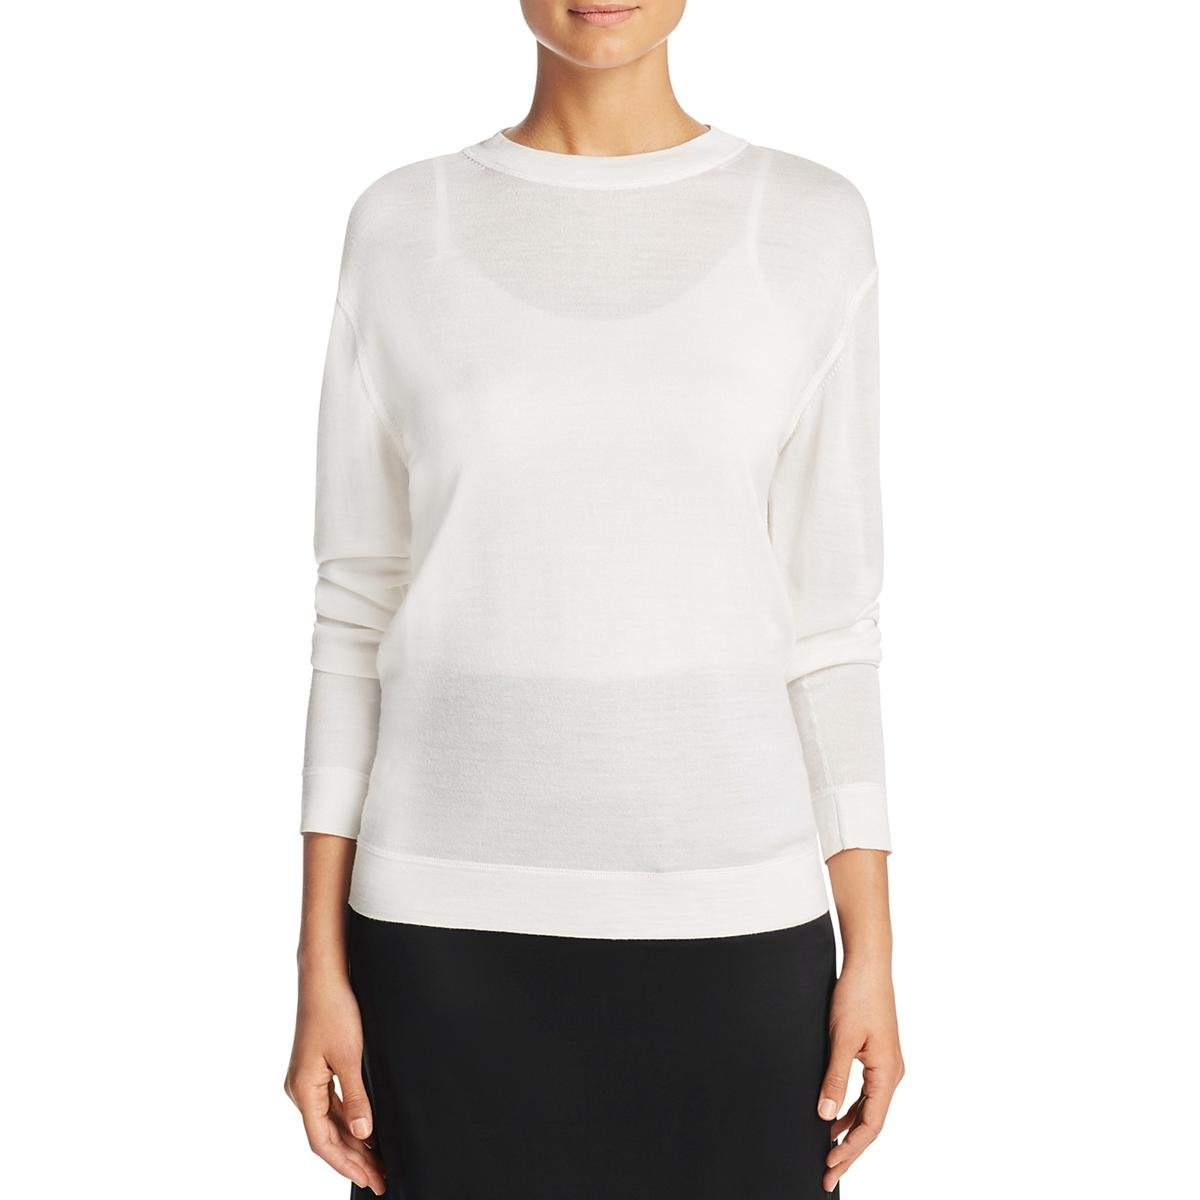 DKNY Womens Silk Mock Neck Casual Top Ivory P